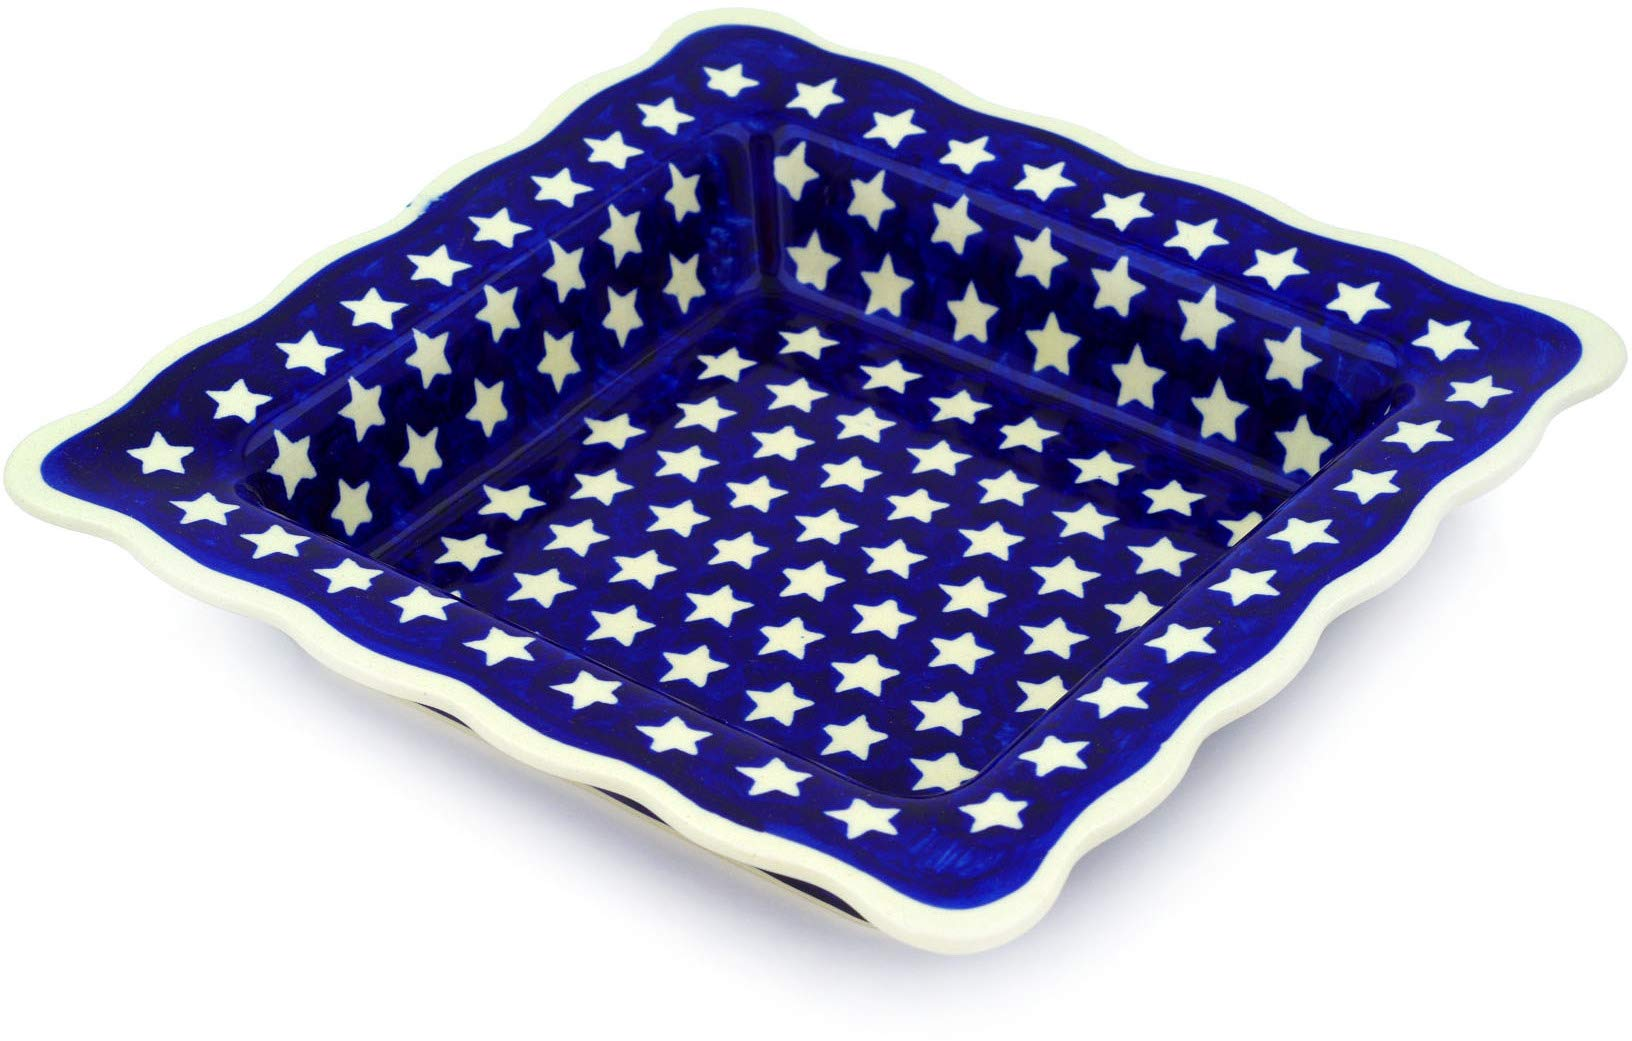 Polish Pottery 9¼-inch Square Bowl (America The Beautiful Theme) + Certificate of Authenticity